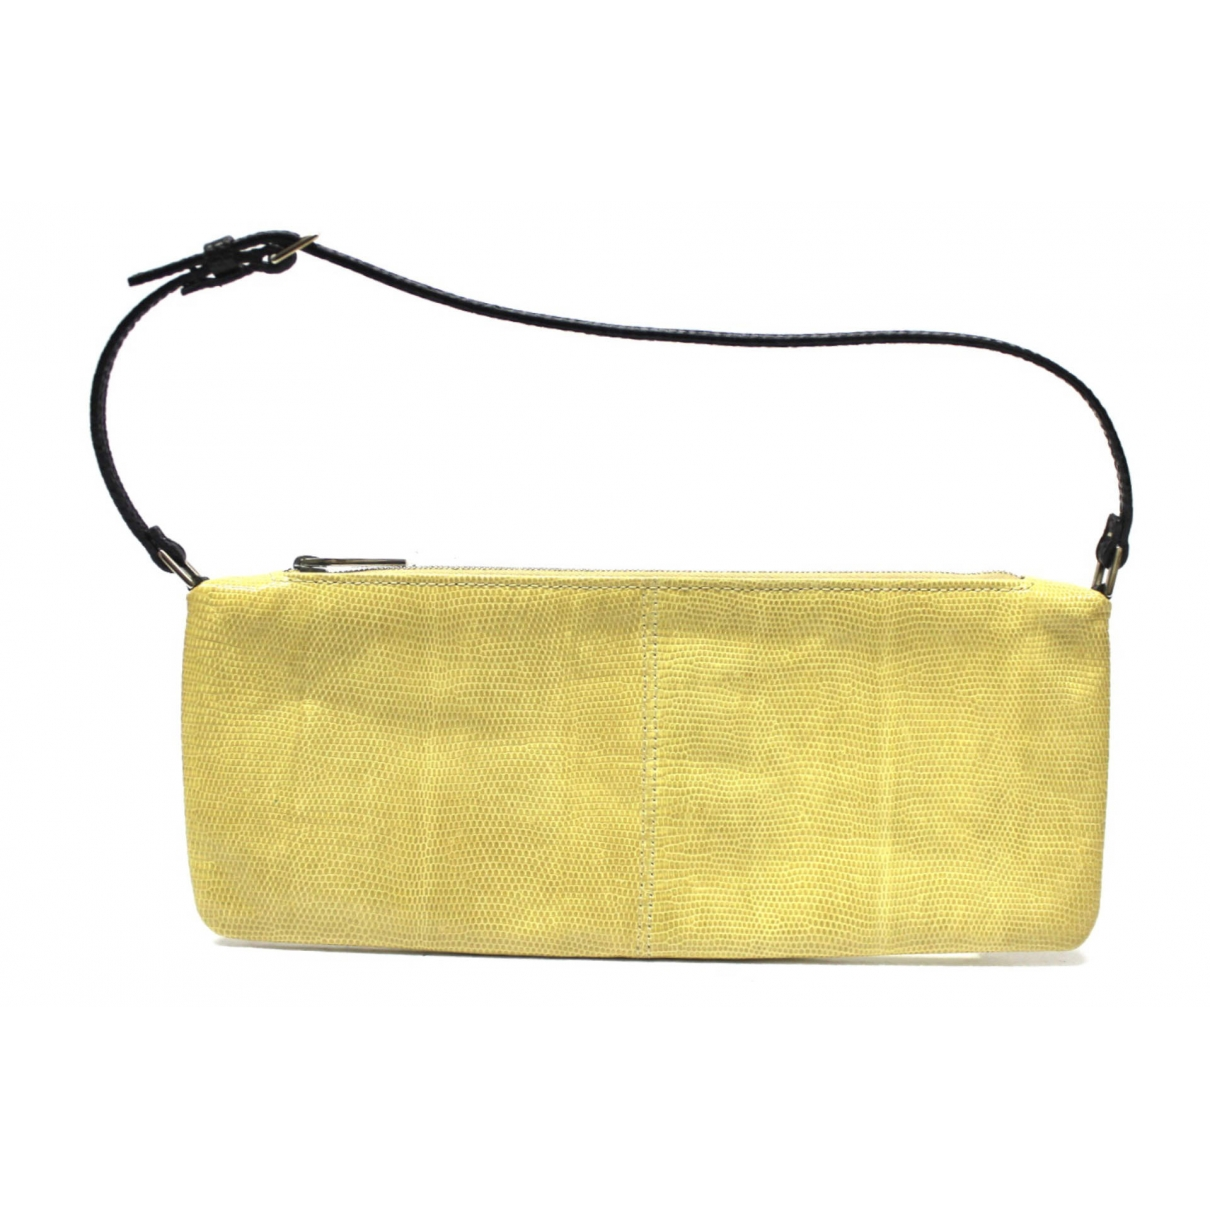 Valentino Garavani \N Yellow Lizard Clutch bag for Women \N